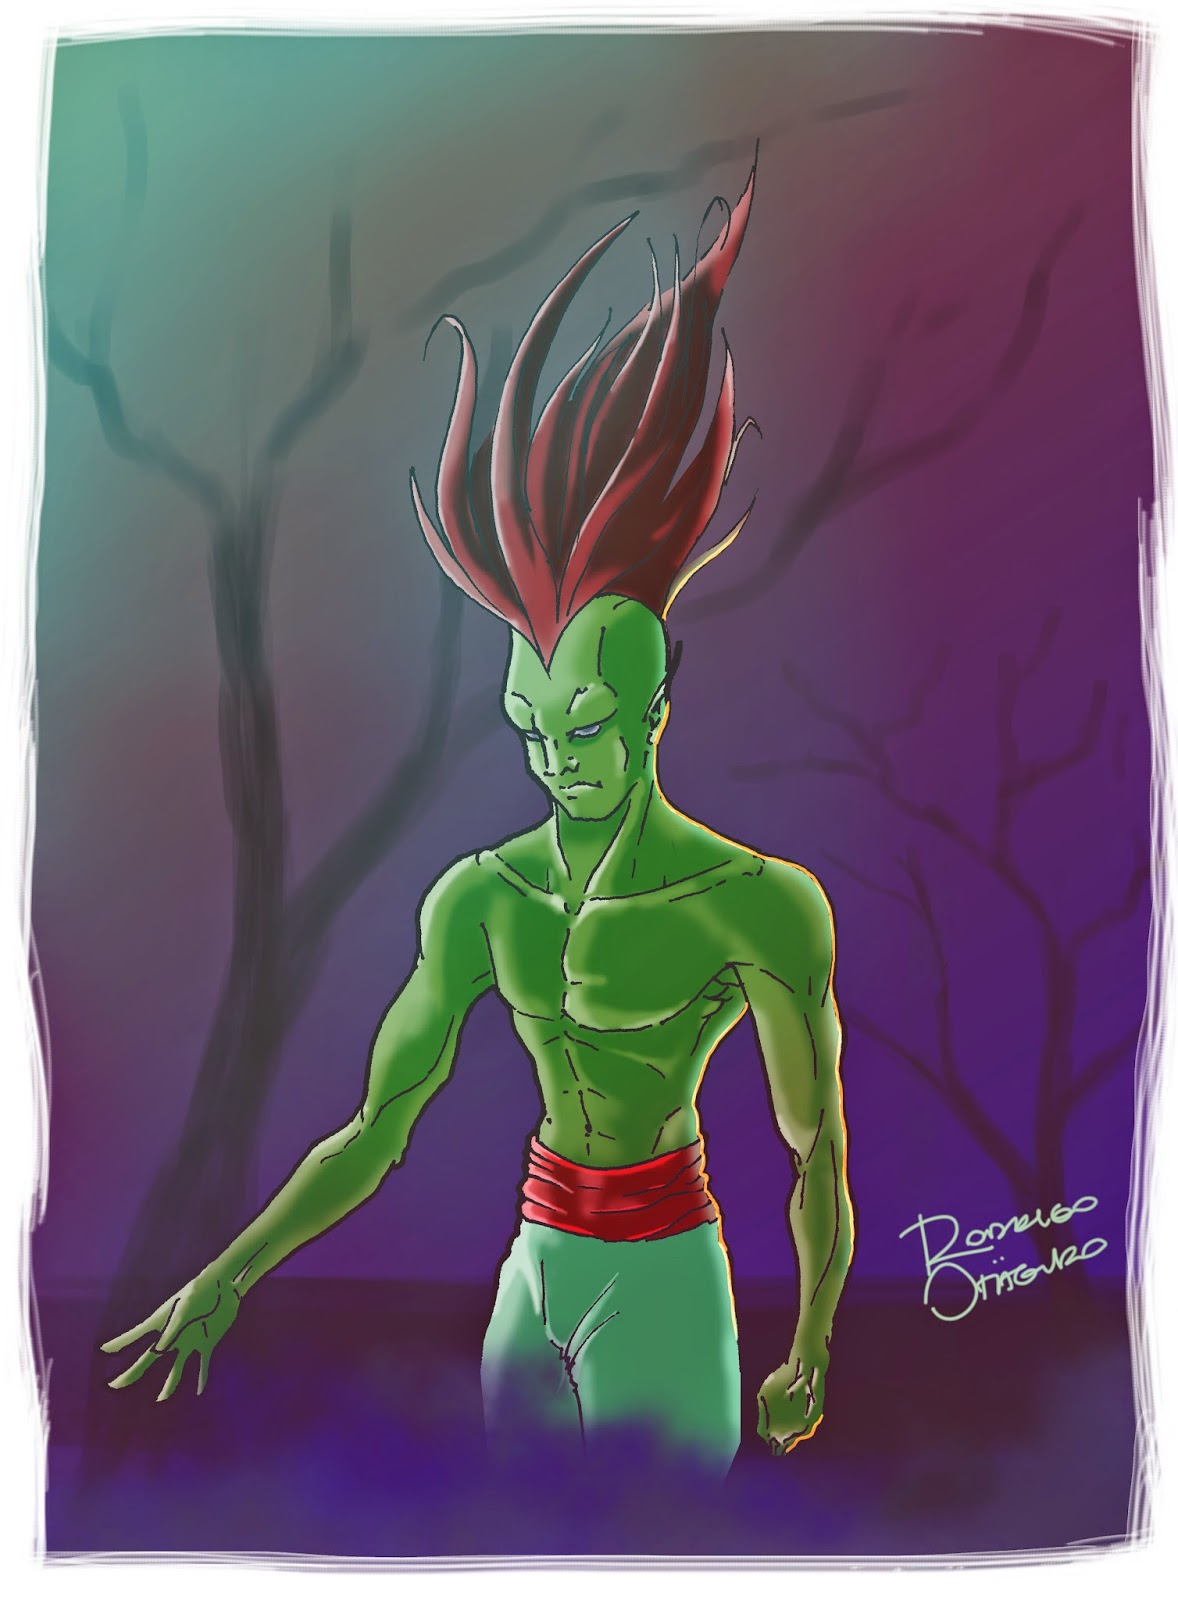 Desenho tradicional em cores, pintura digital/Traditional drawing on color, digital paint